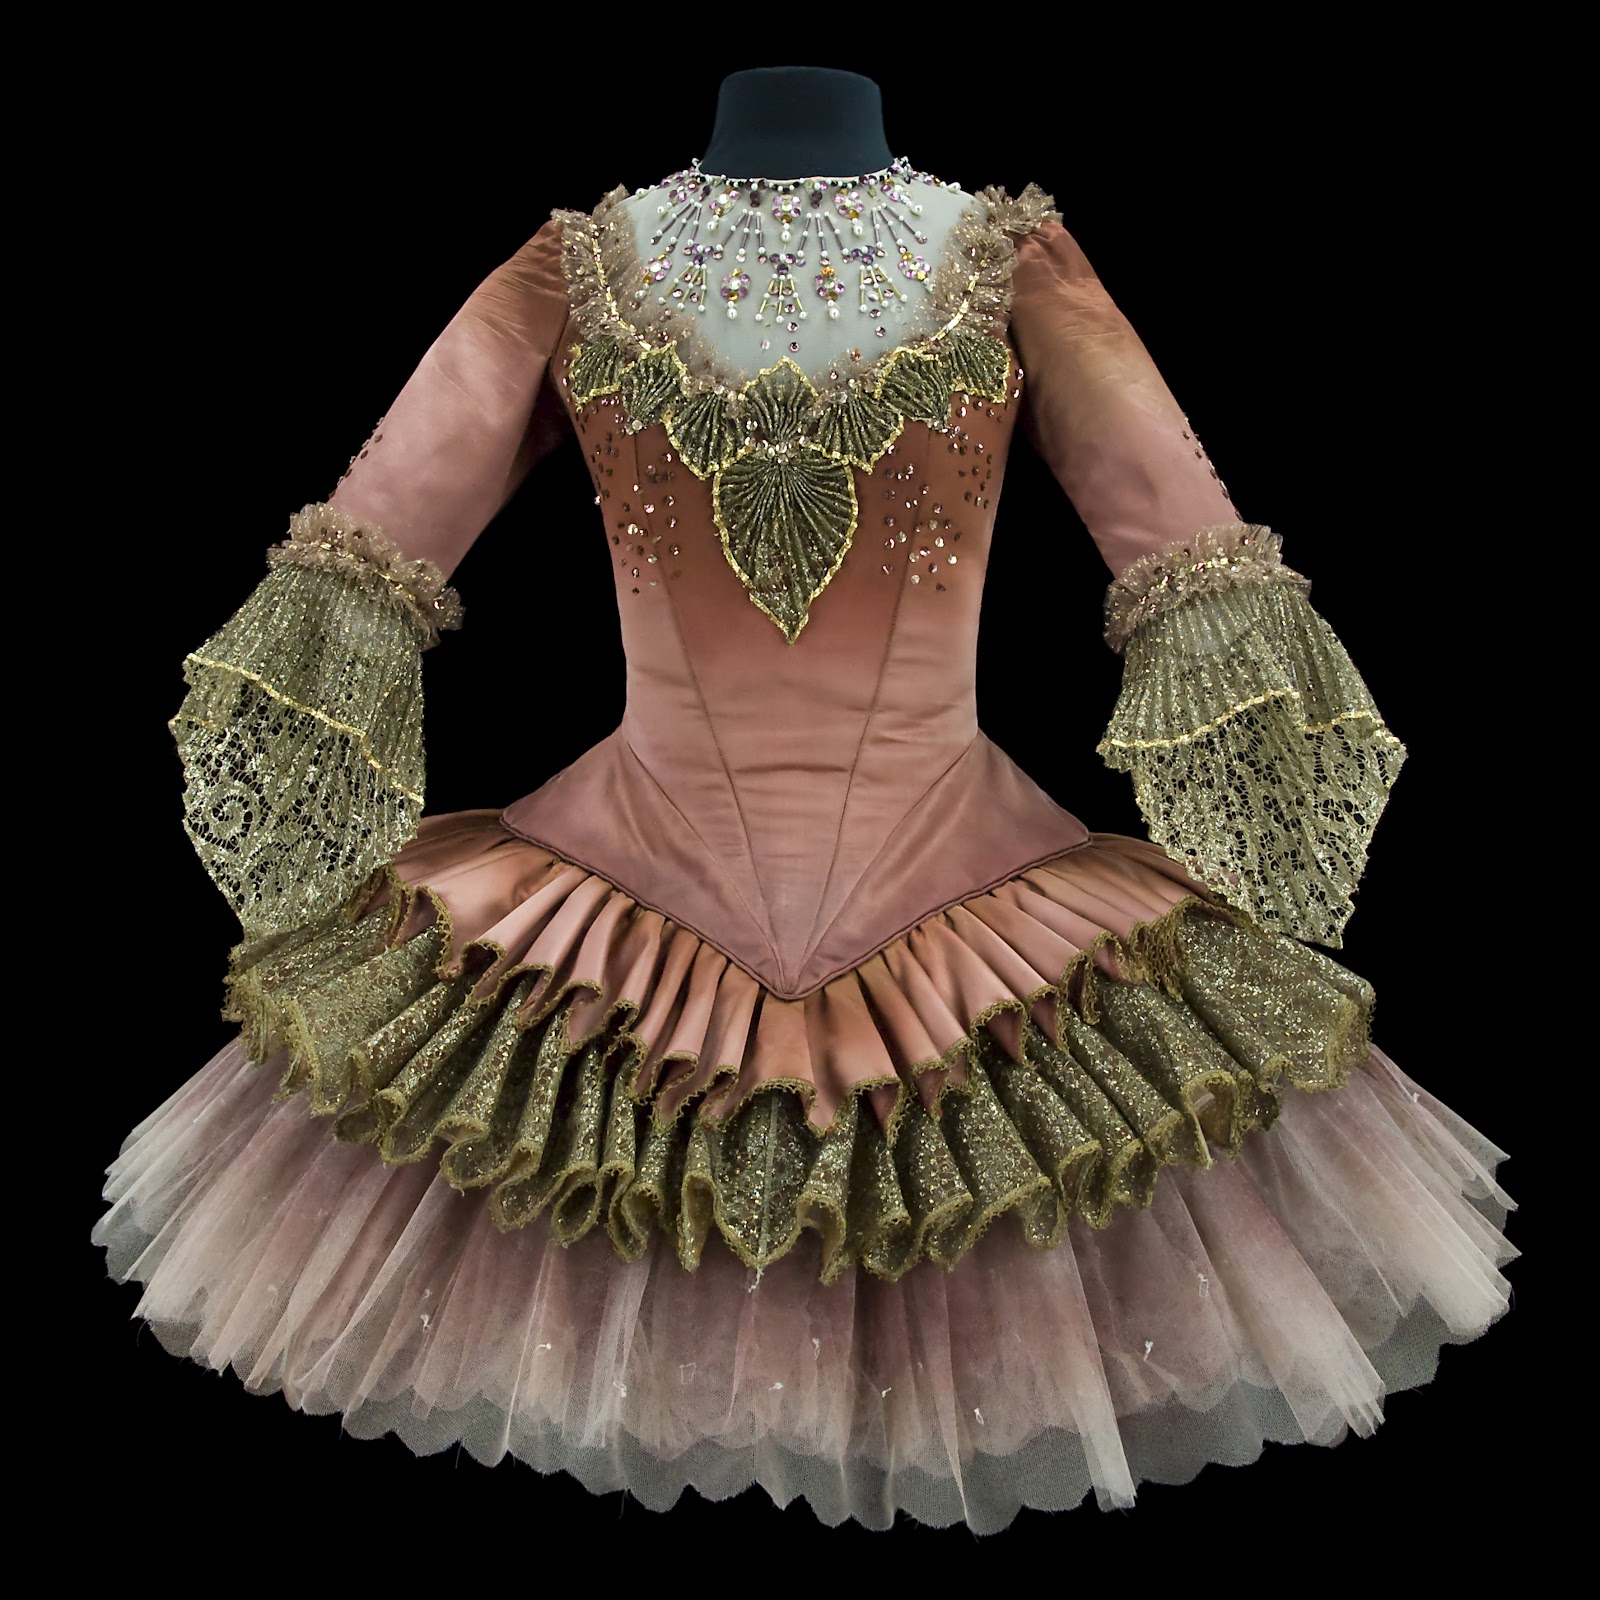 in Dance  Exhibition of Nureyev   s Costumes at the de Young MuseumEarth Fairy Costume